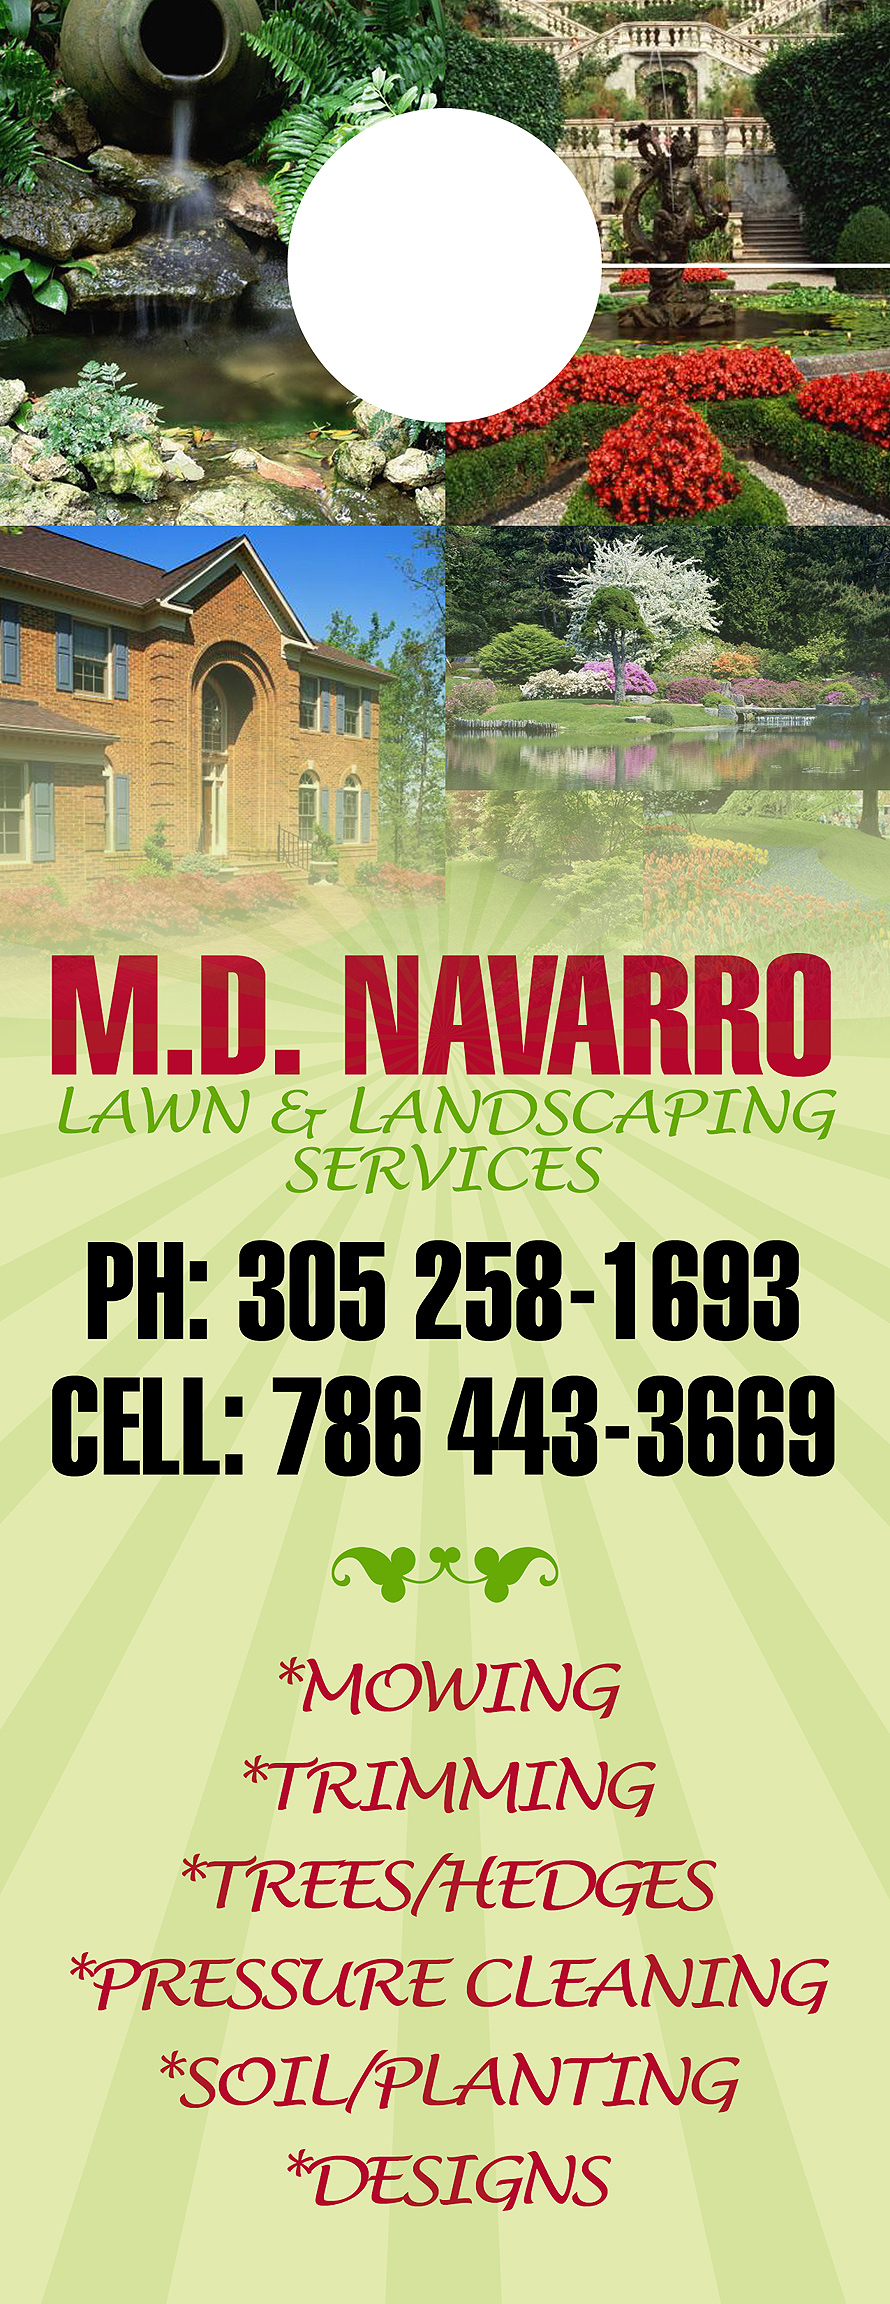 M.D. Navarro Lawn and Landscaping Services